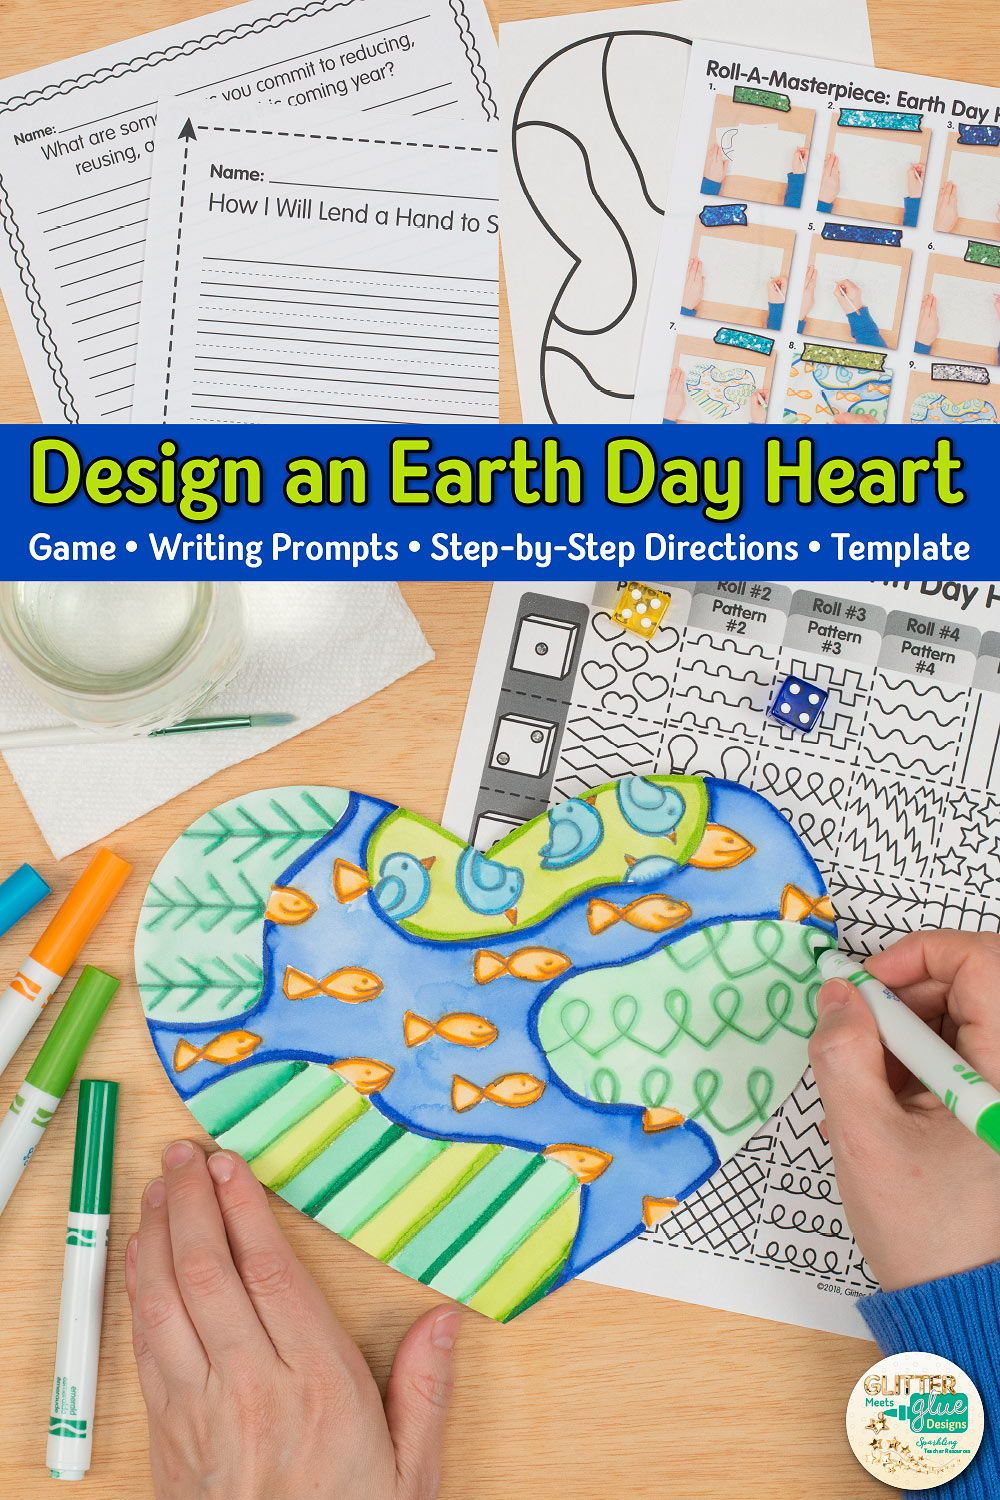 Earth Day Heart Art Game Art Lessons Byglitter Meets Glue In